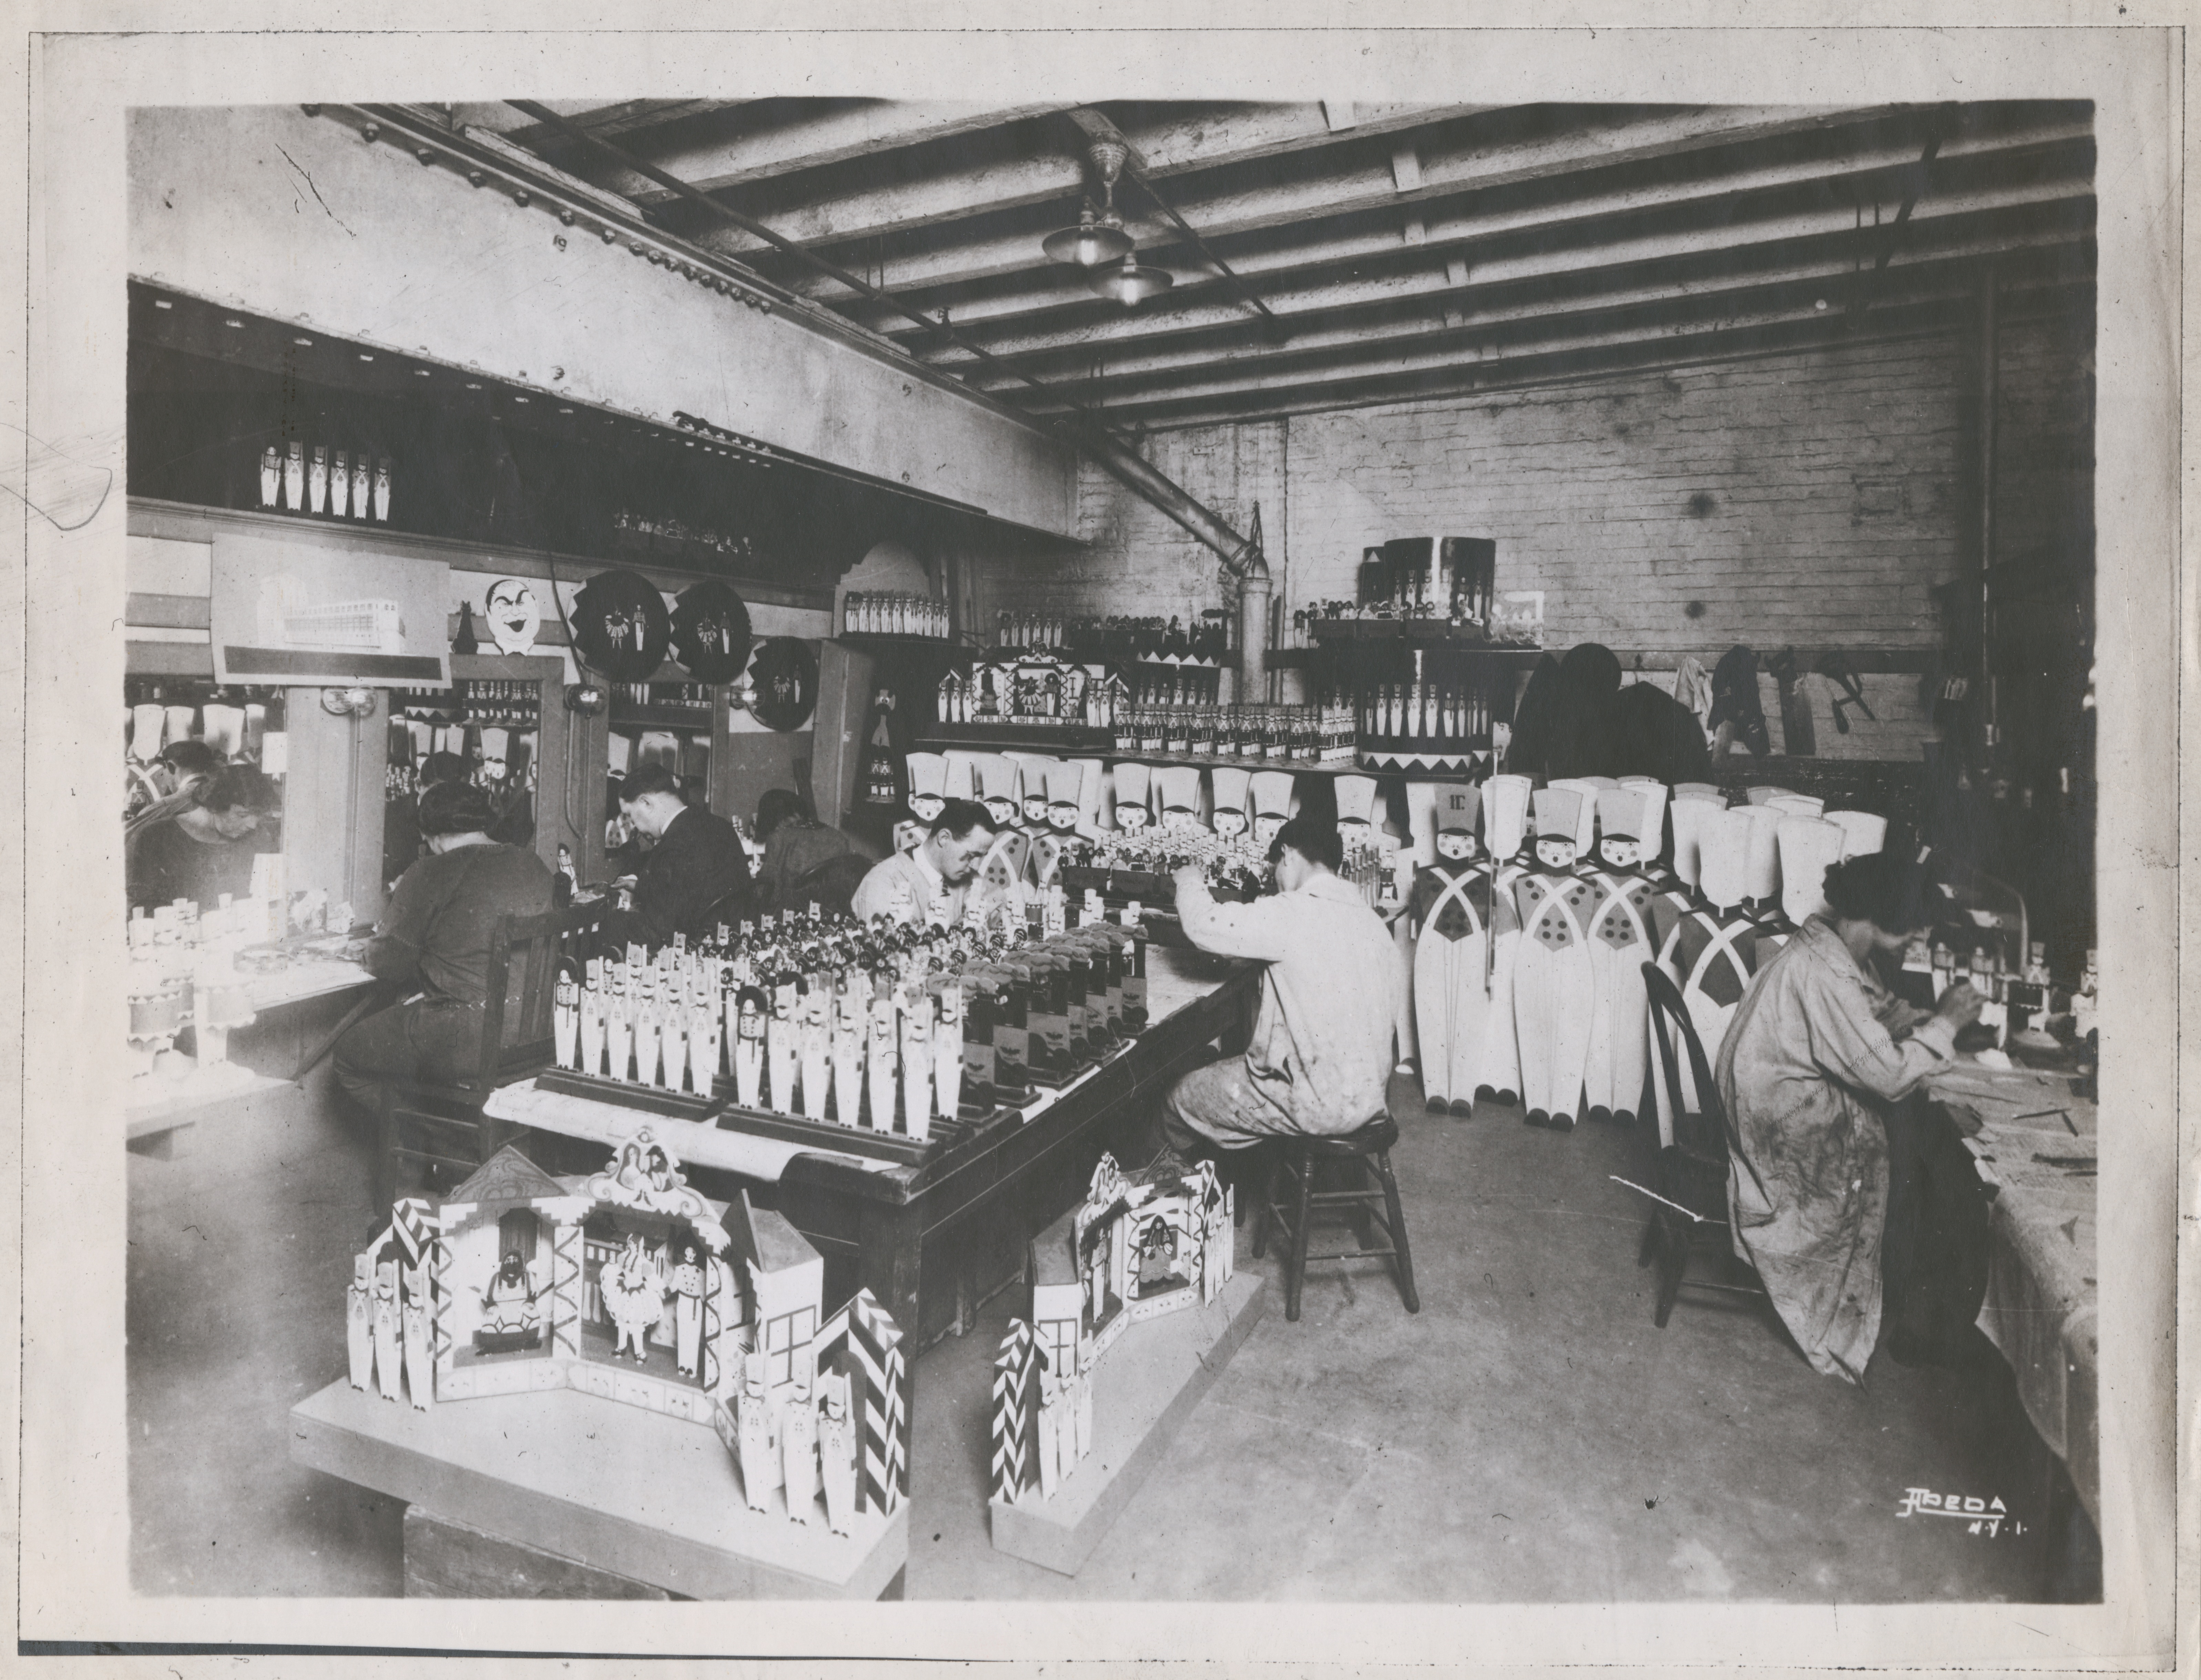 """A backstage workshop at the Princess Theater in New York, where artists are making props for """"The Parade of the Wooden Soldiers"""" (1922)."""